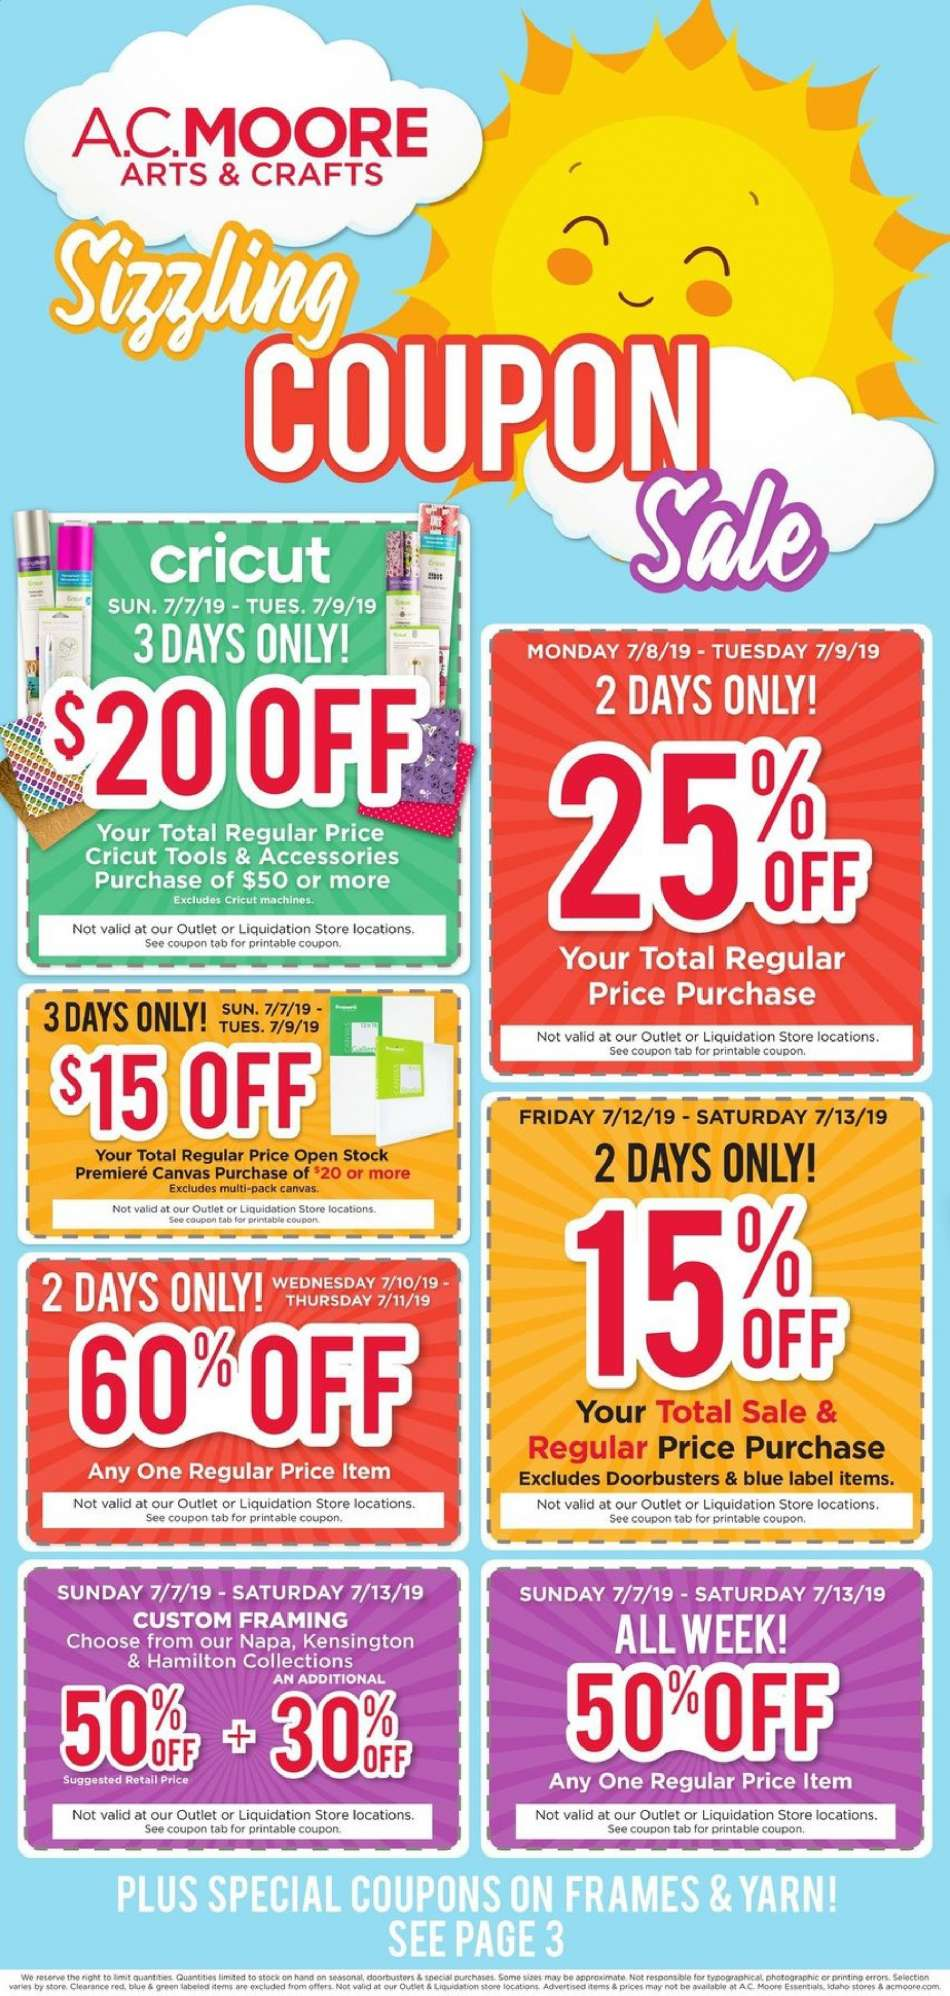 photograph regarding Ac Moore Printable Coupons called A.C. Moore flyer 07.07.2019 - 07.13.2019